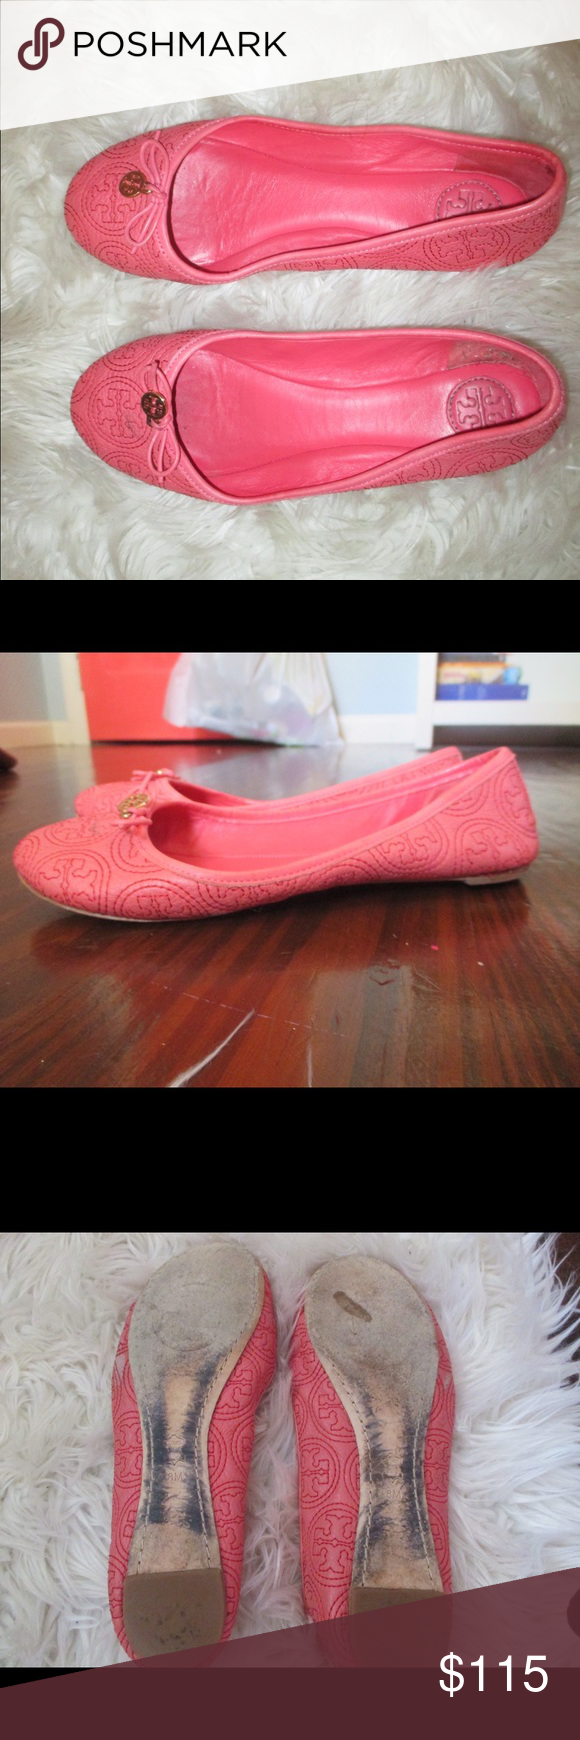 """*AUTHENTIC*Tory Burch Chelsea Flat in """"rose petal"""" Pretty rose pink, embroidered Tory Burch logo, gold emblem in the front, slightly stretched out Tory Burch Shoes Flats & Loafers"""